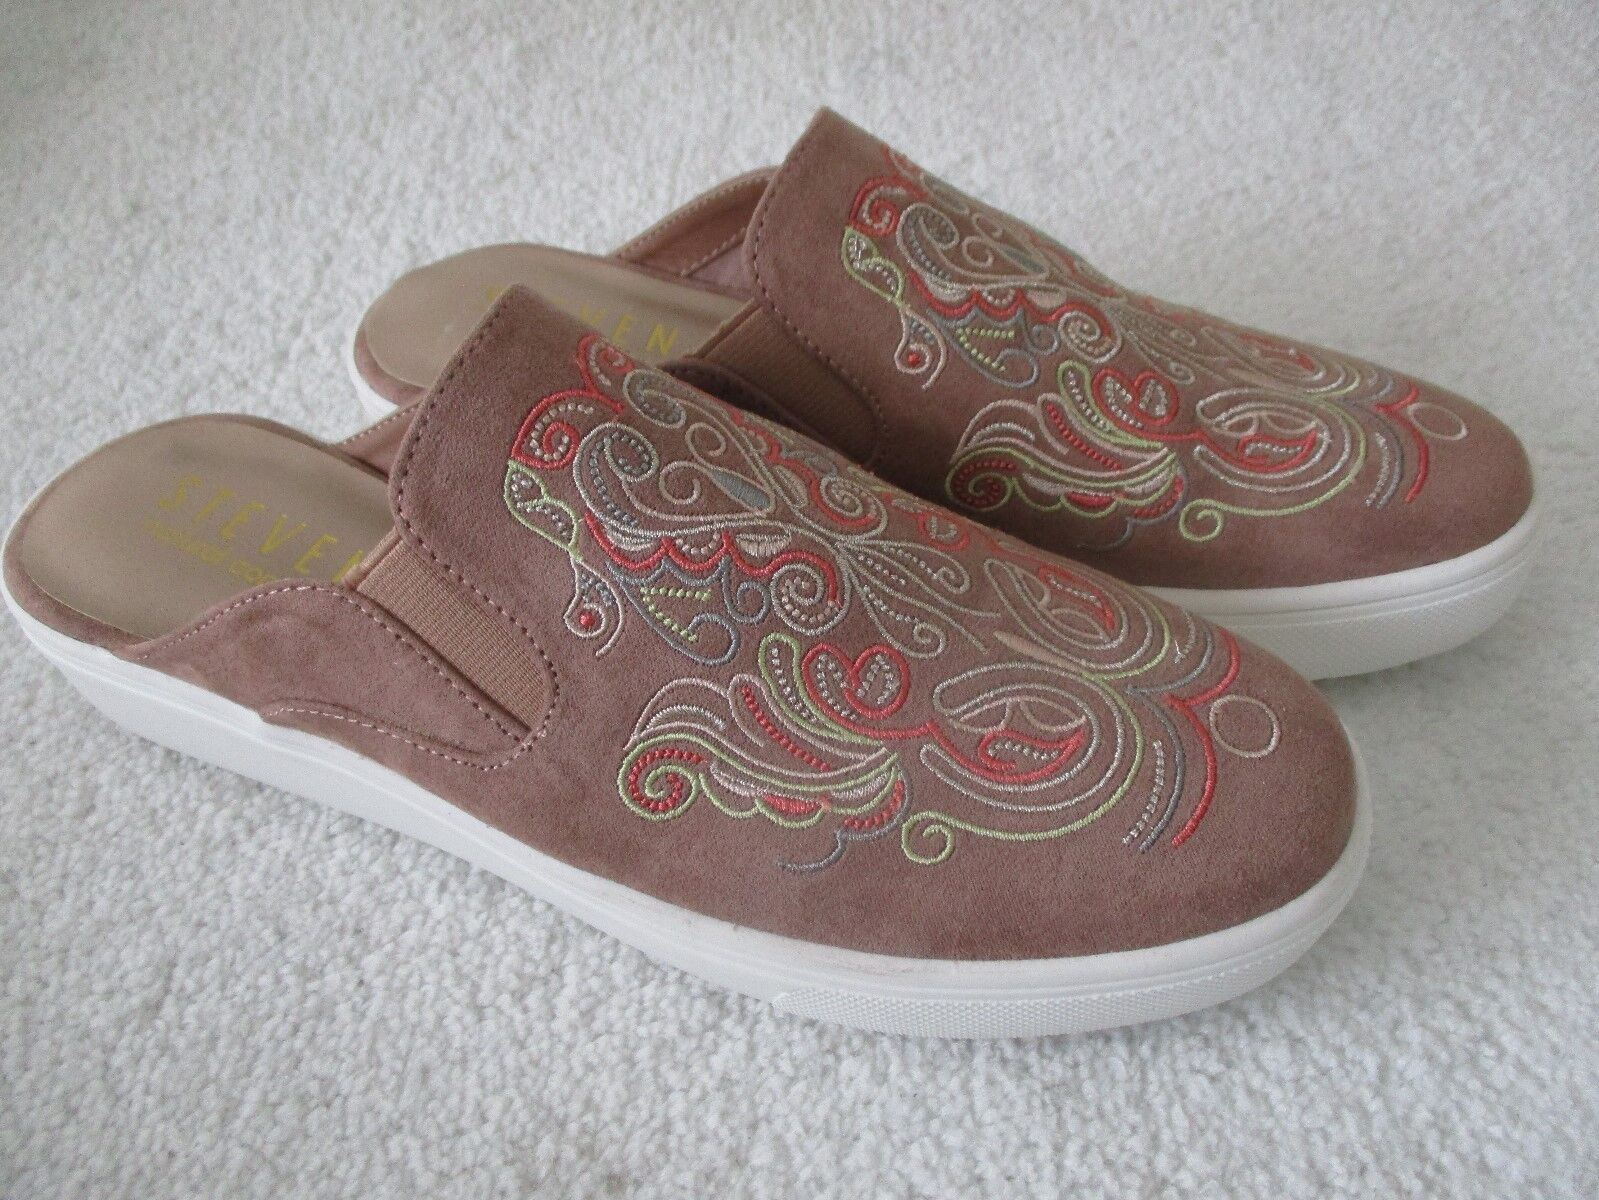 STEVEN NATURAL COMFORT MAUVE EMBROIDERED SNICKERS SIZE 12 W - NEW